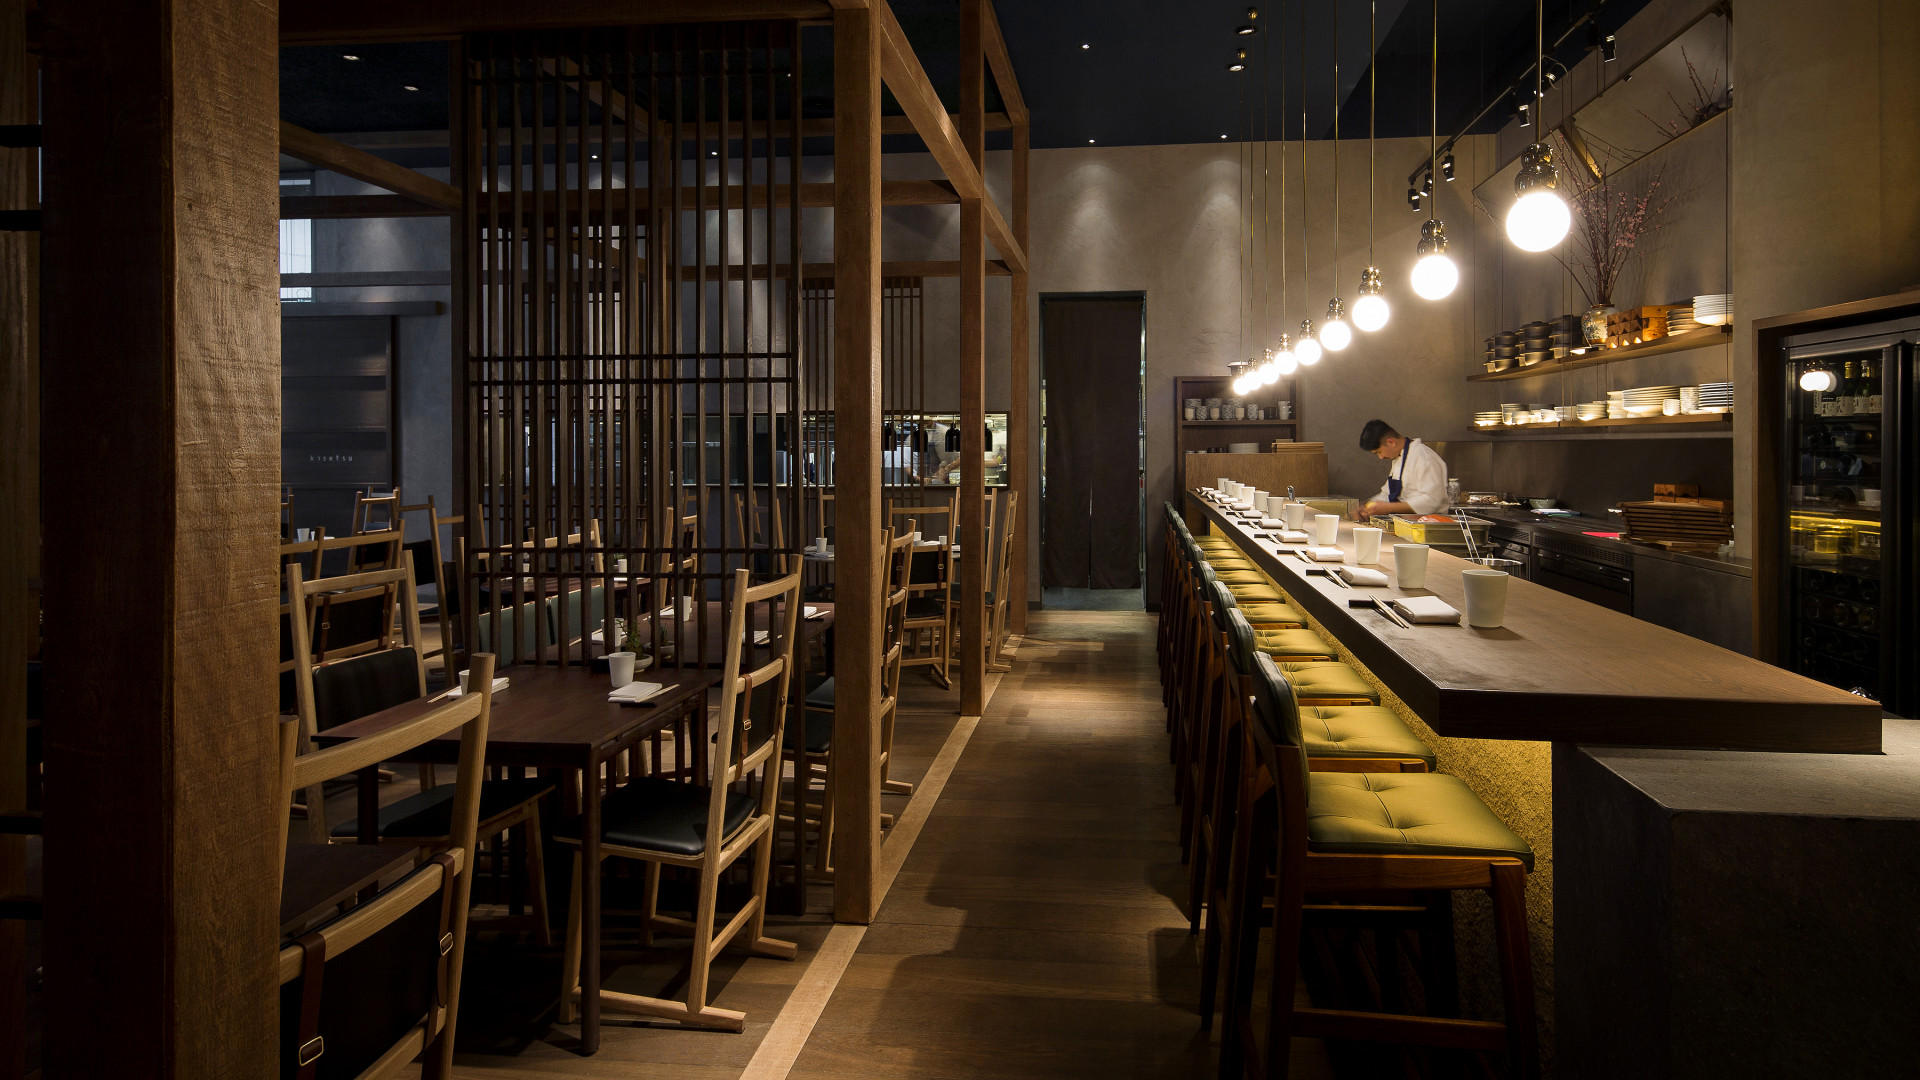 Sosharu is an izakaya-style restaurant